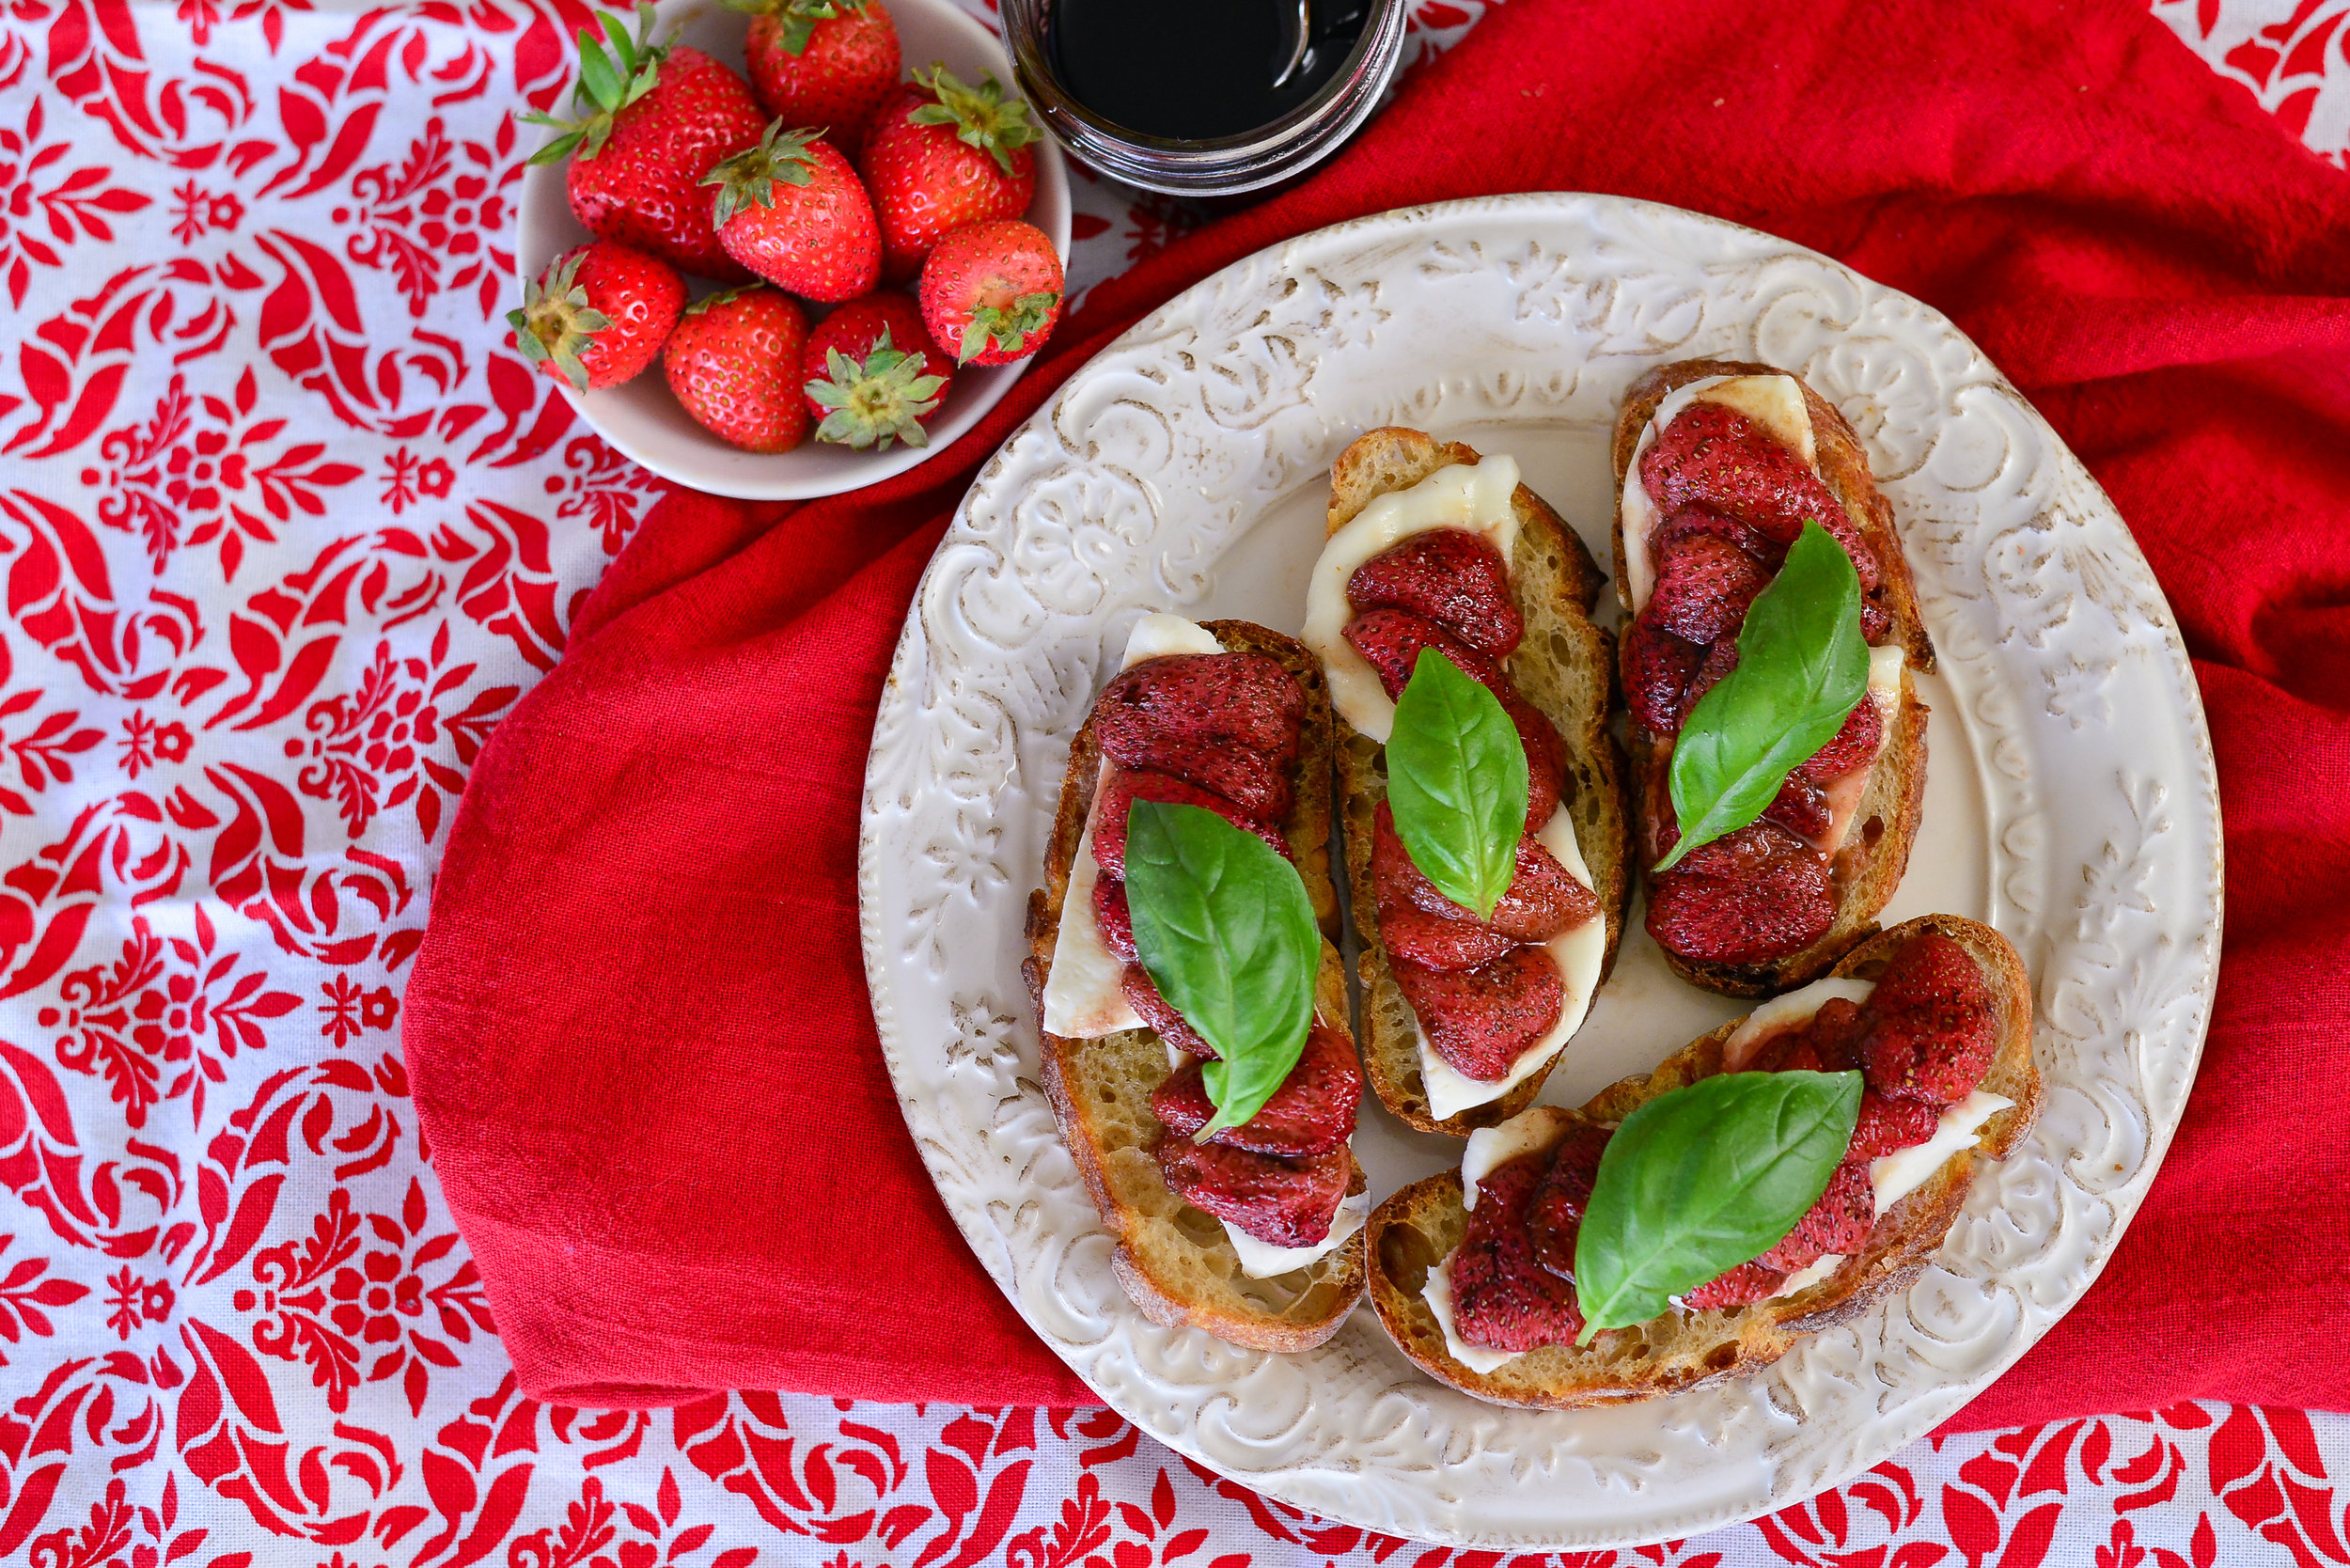 Roasted Balsamic Strawberry Toasts with Mozzarella for the holiday table win! Head over to  Heart of Farmers  for the recipe.